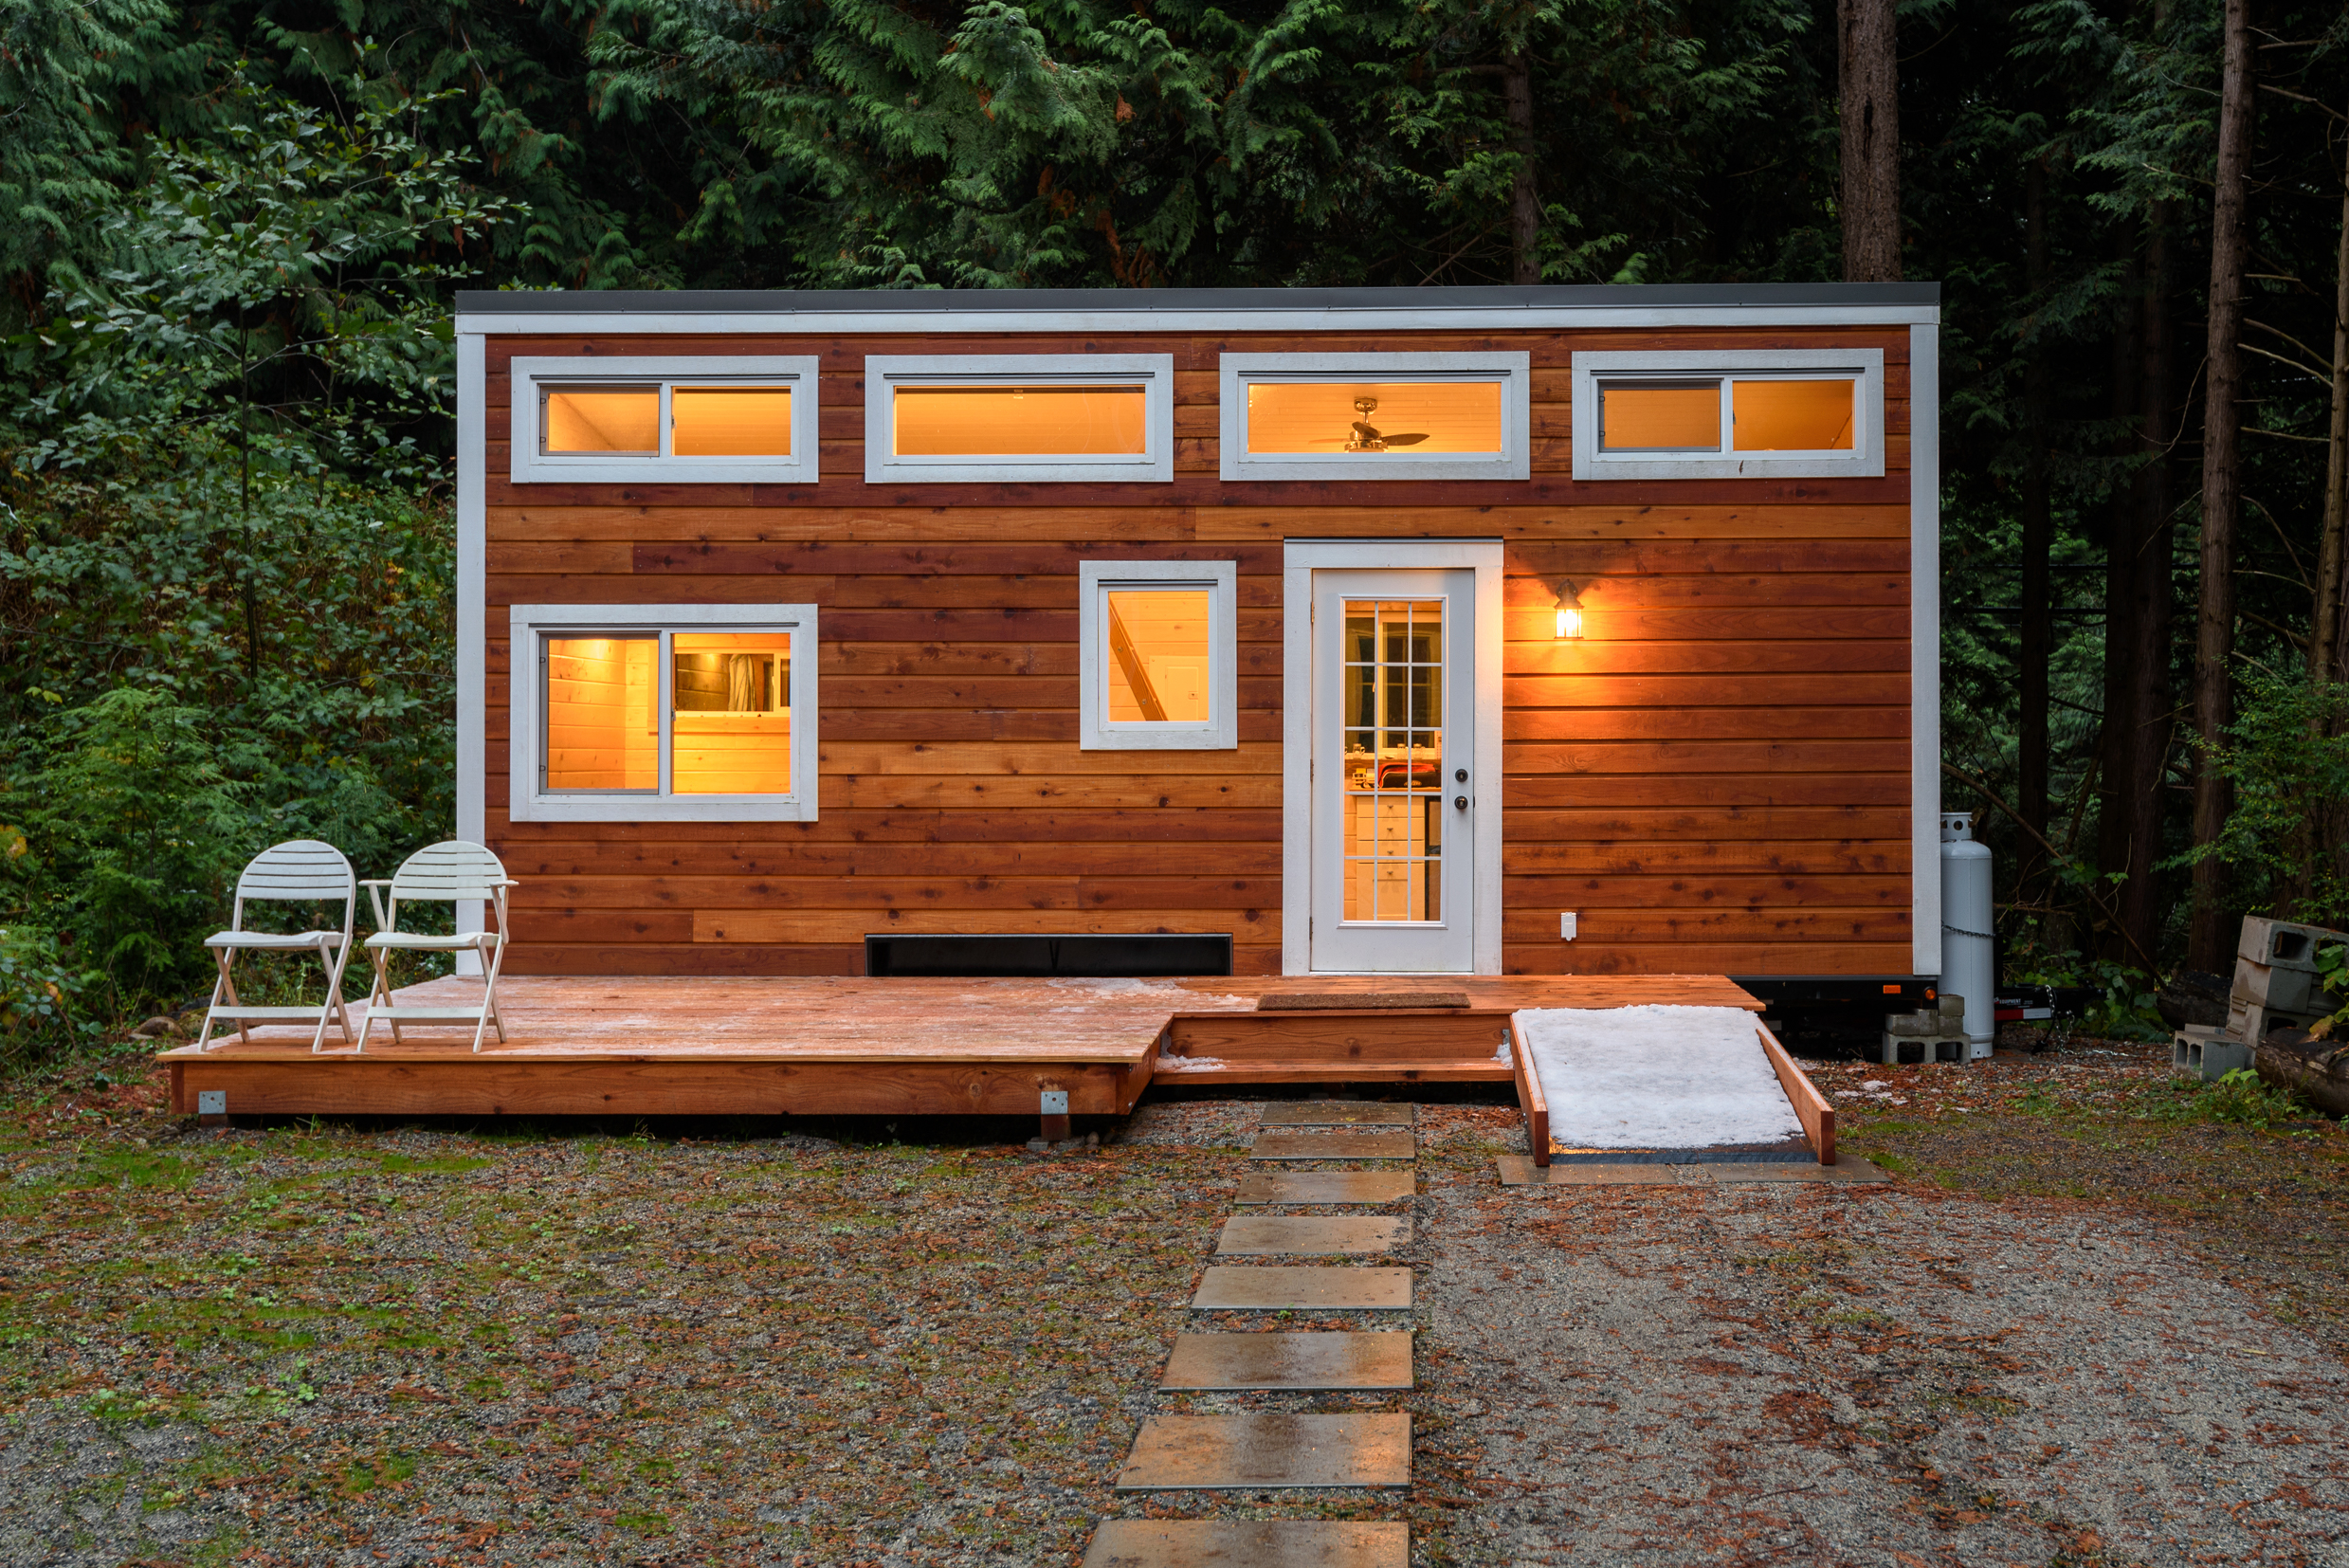 Small,Wooden,Cabin,House,In,The,Evening.,Exterior,Design.